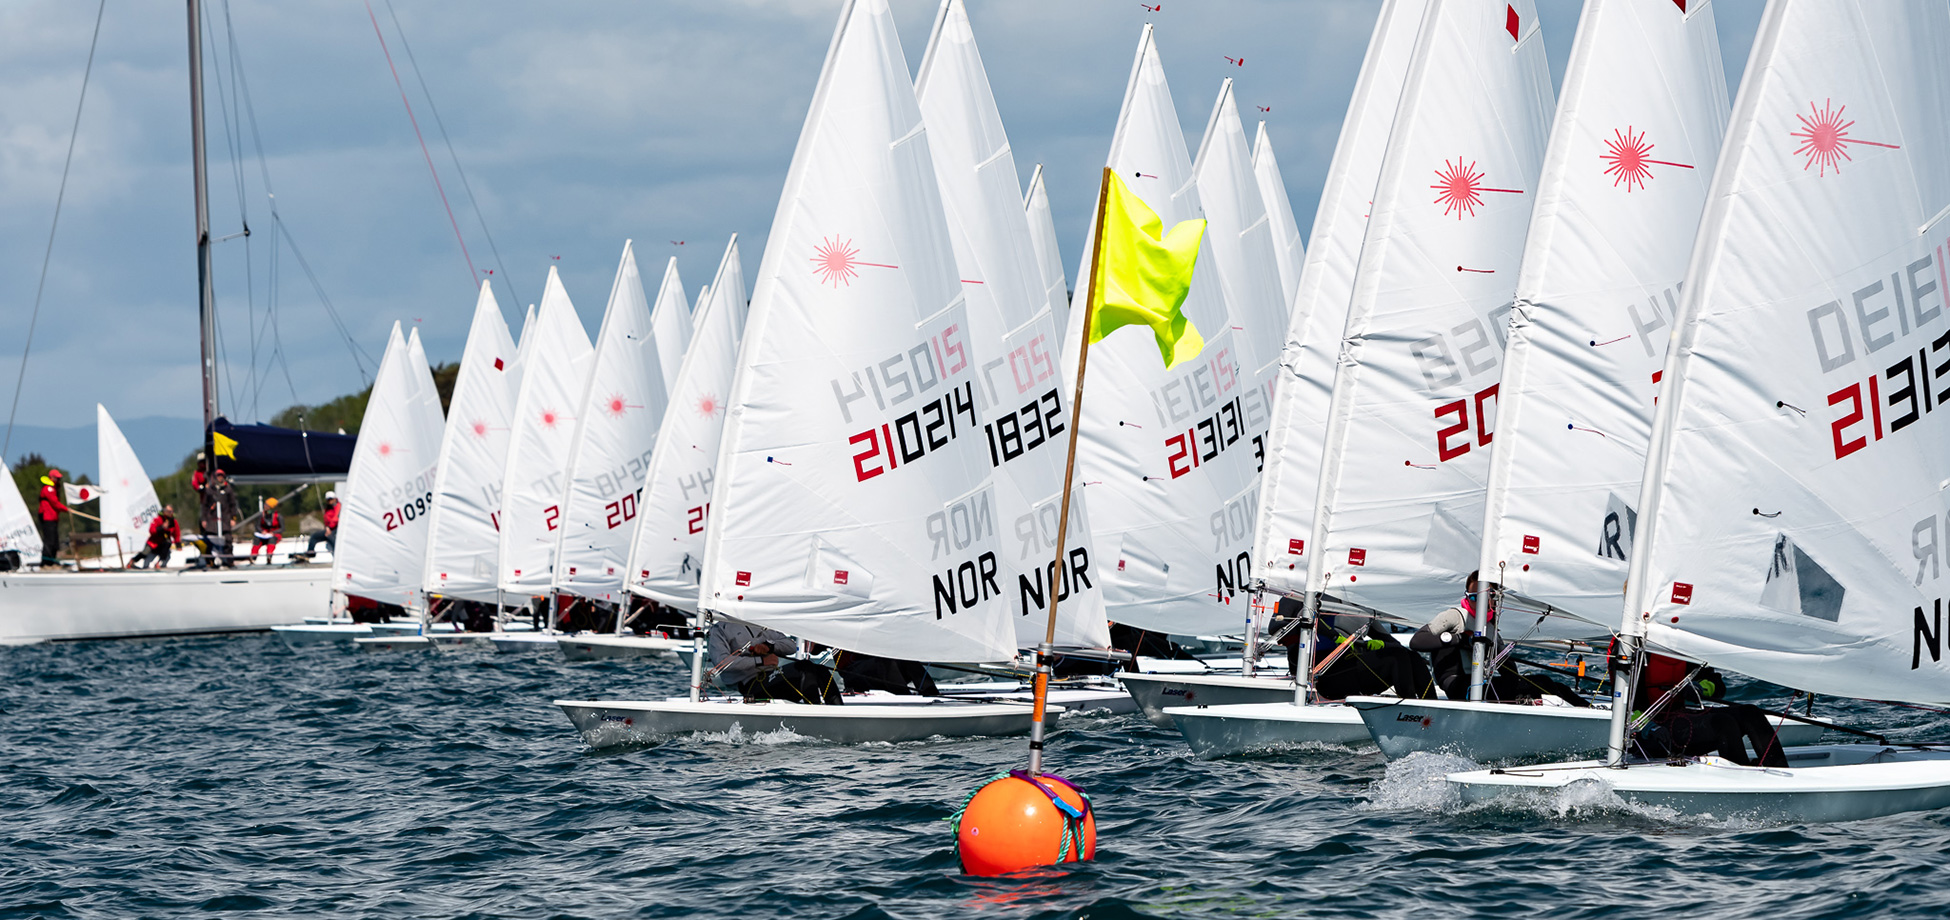 2019 Laser Europa Cup Norway